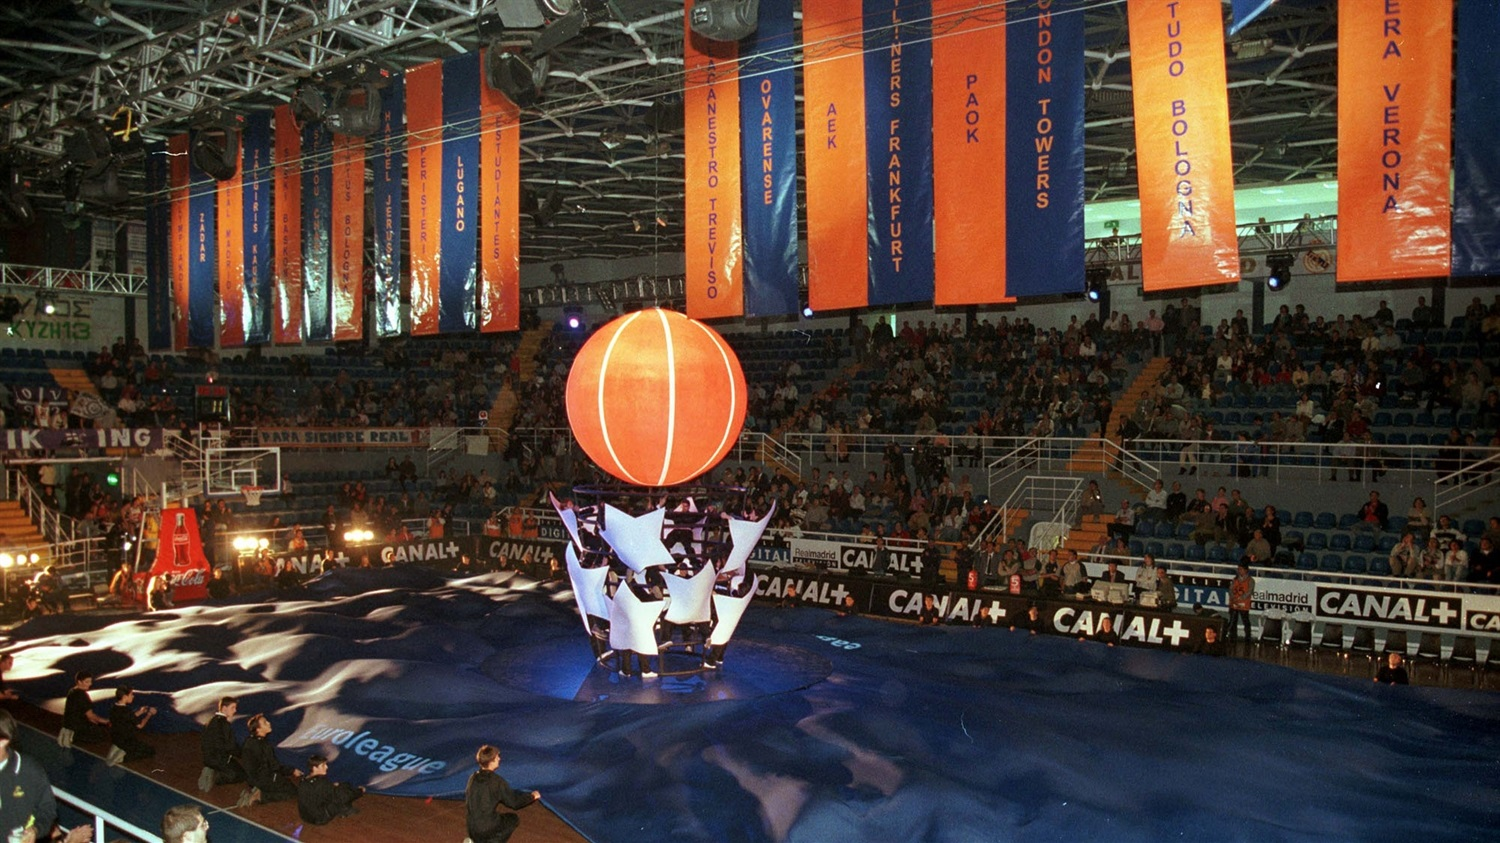 The opening ceremonies celebrated the birth of a new basketball league